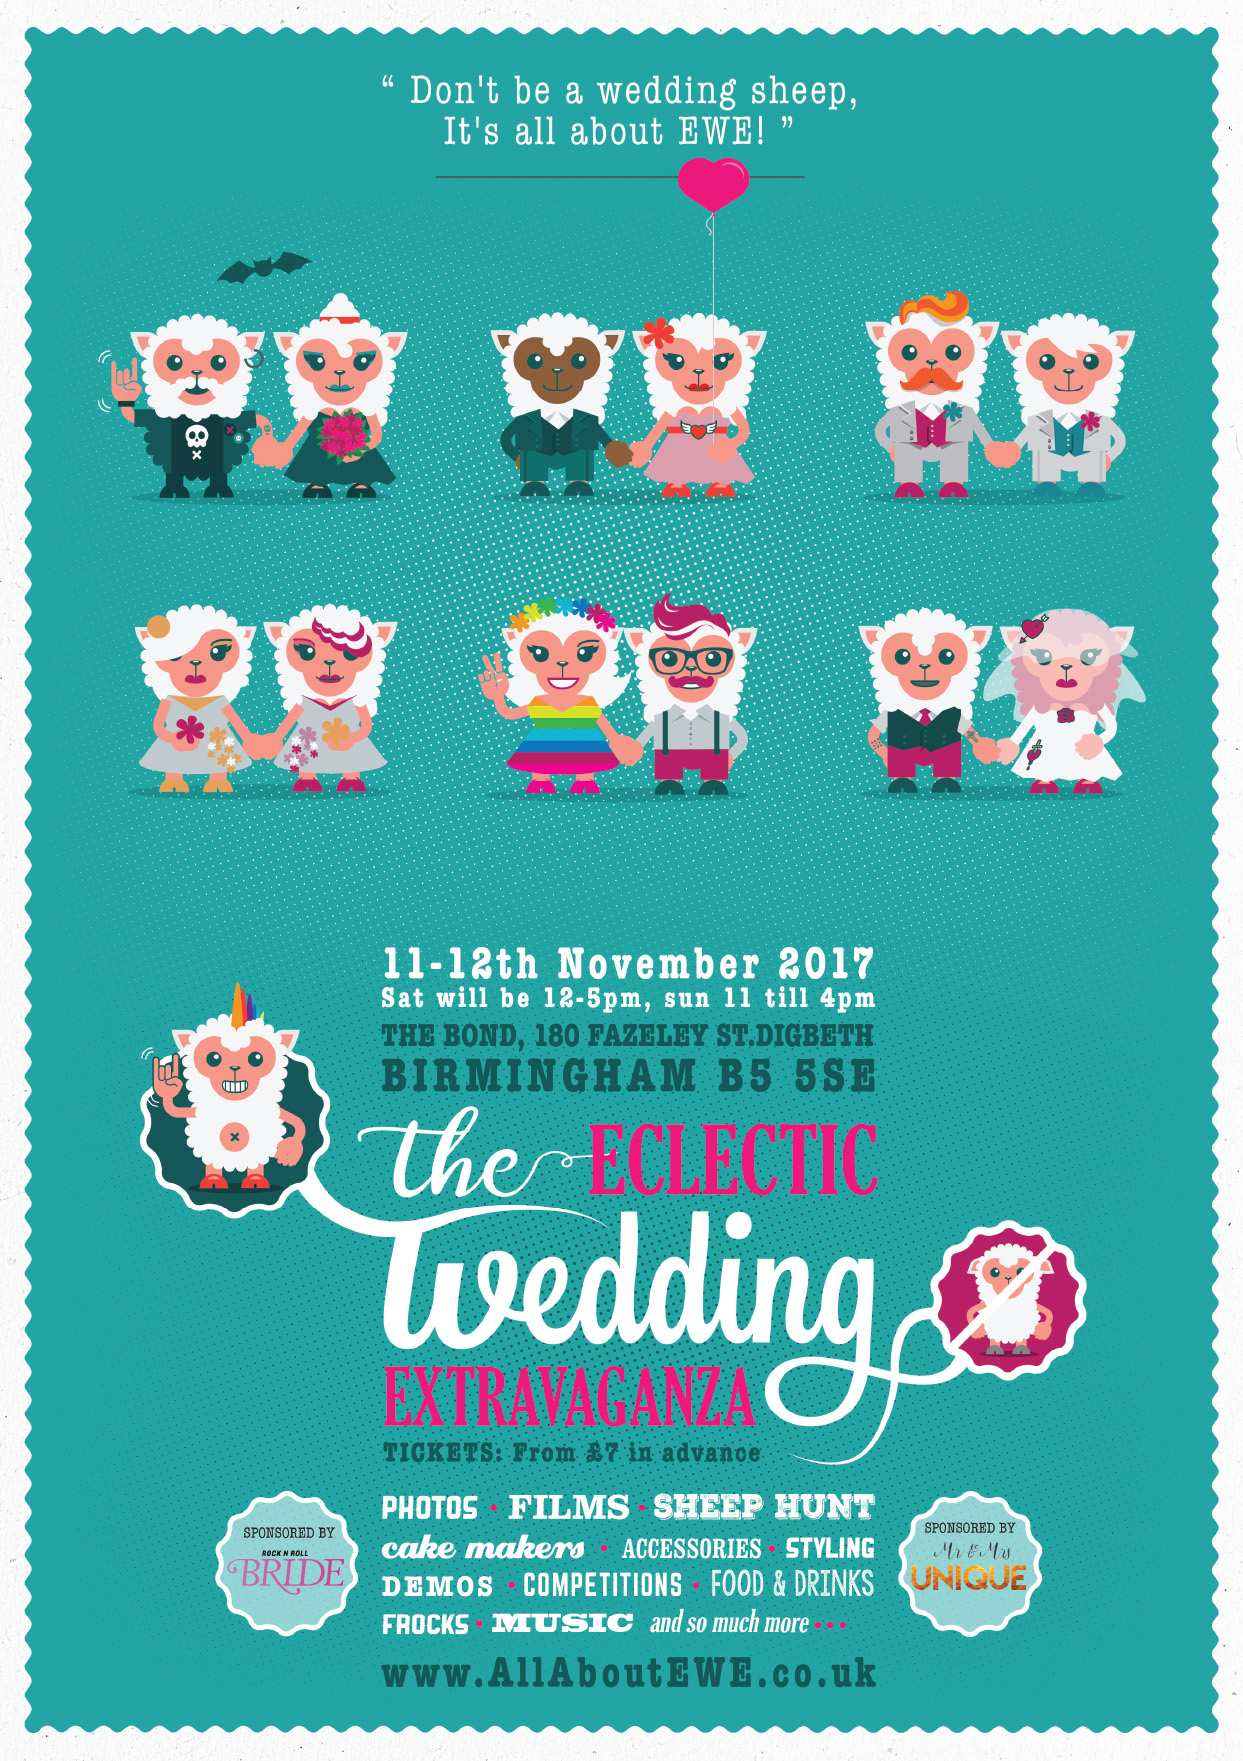 EWE Alternative wedding fair poster